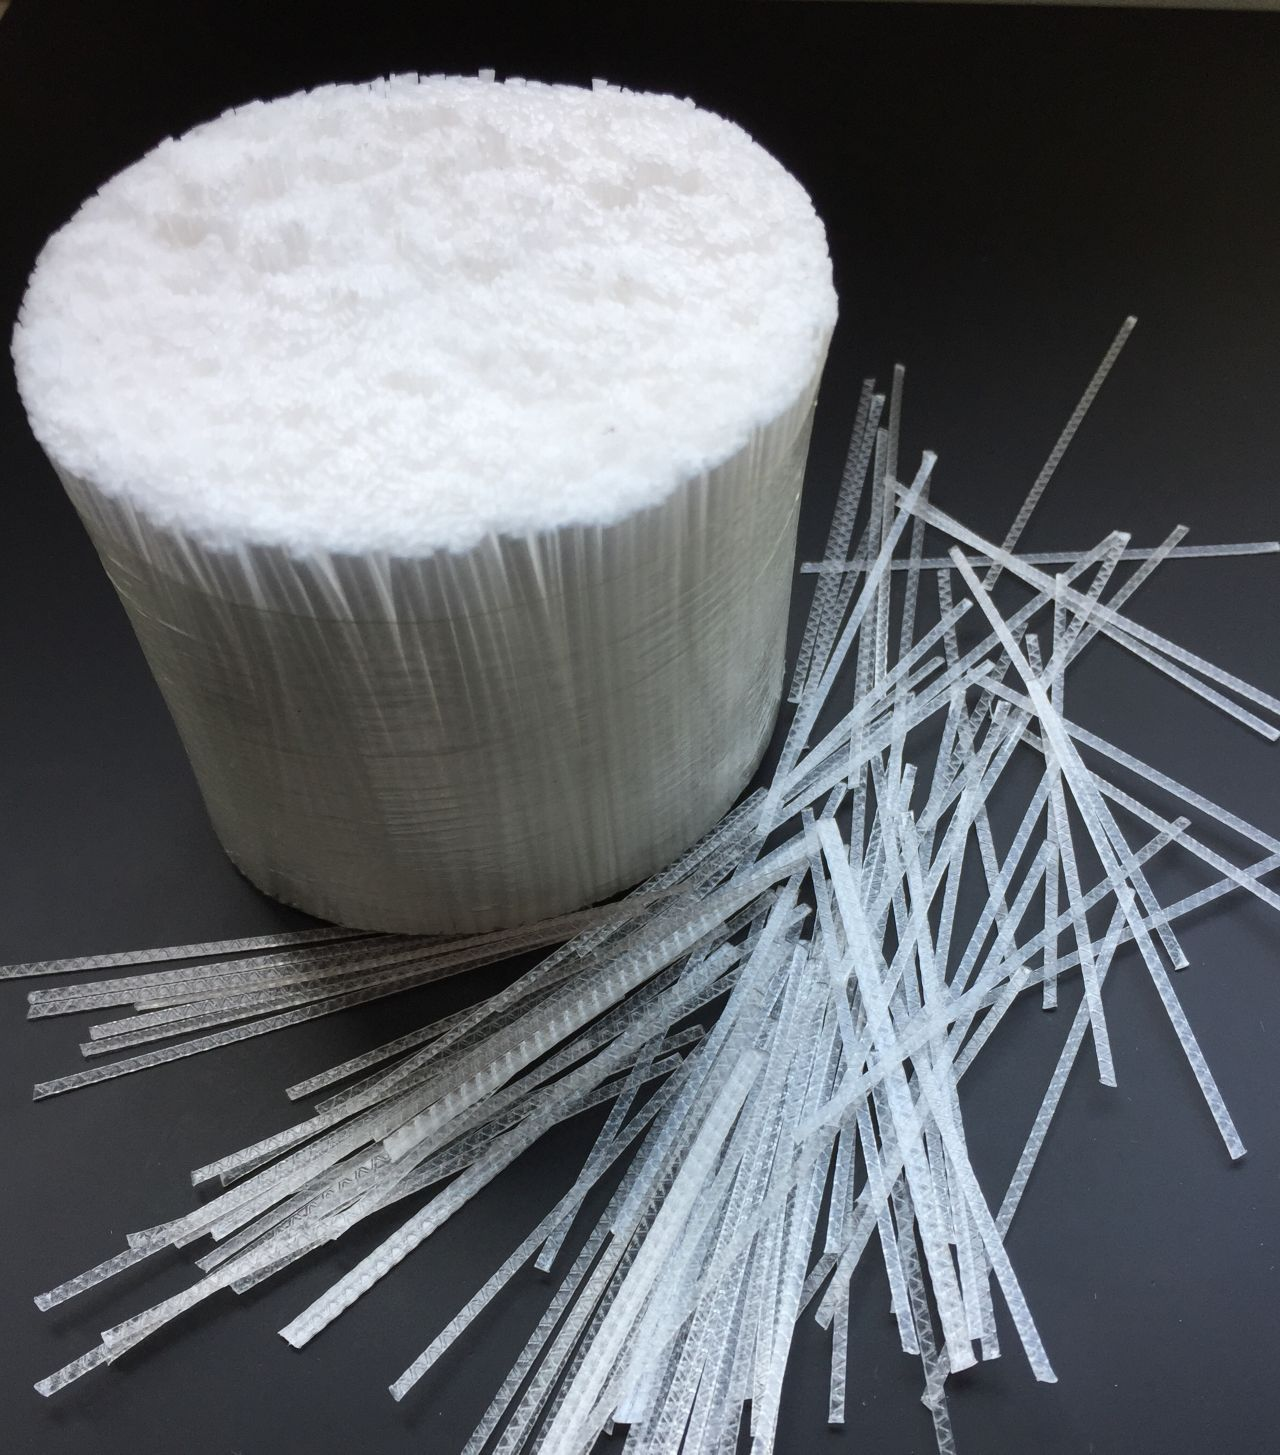 SikaFiber fibers for concrete reinforcement